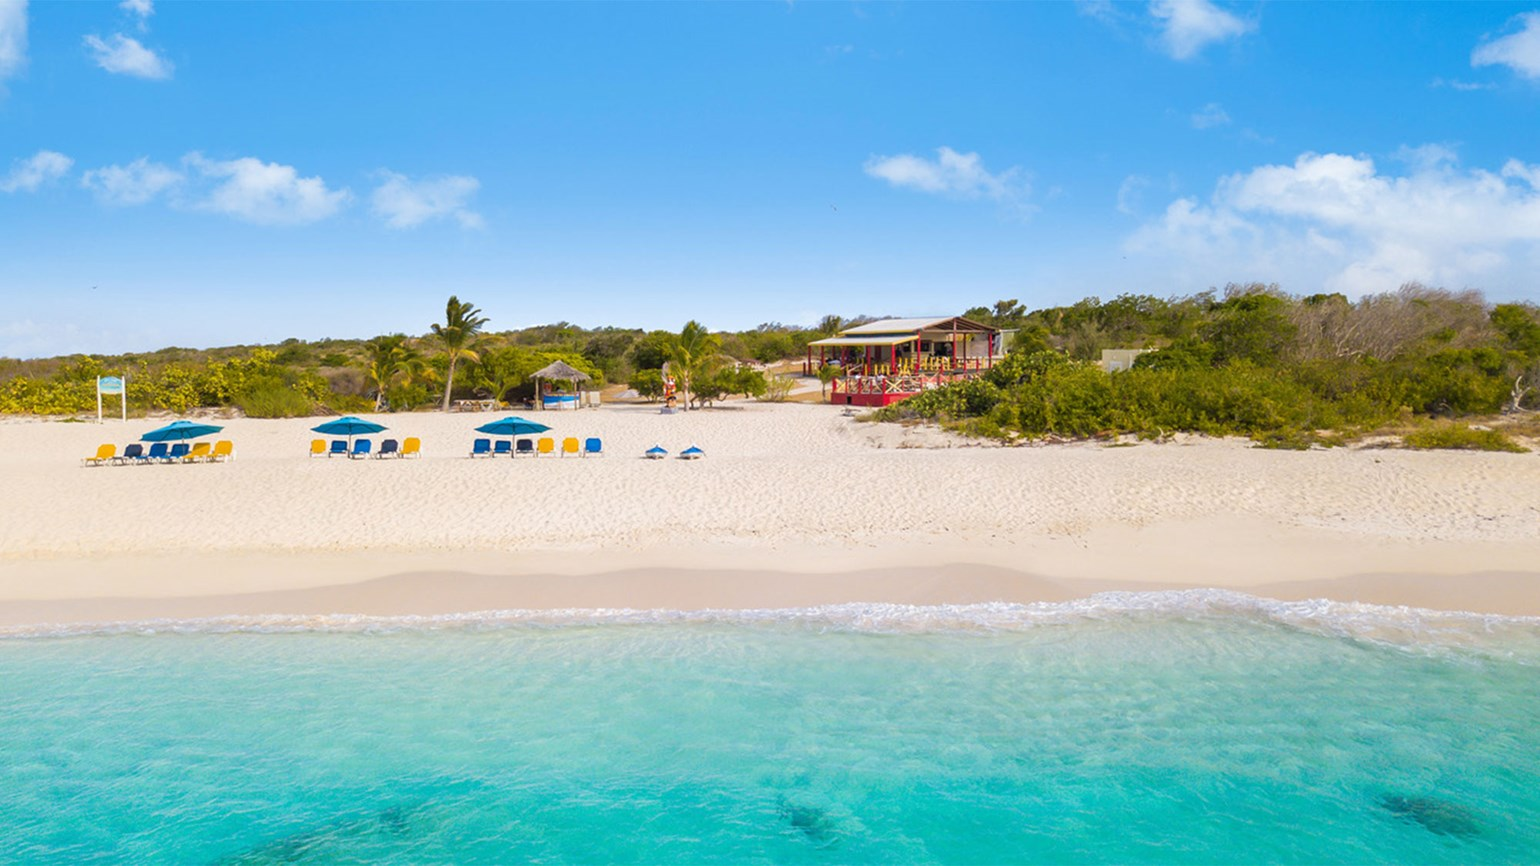 Anguilla: All visitors must be vaccinated, starting in July